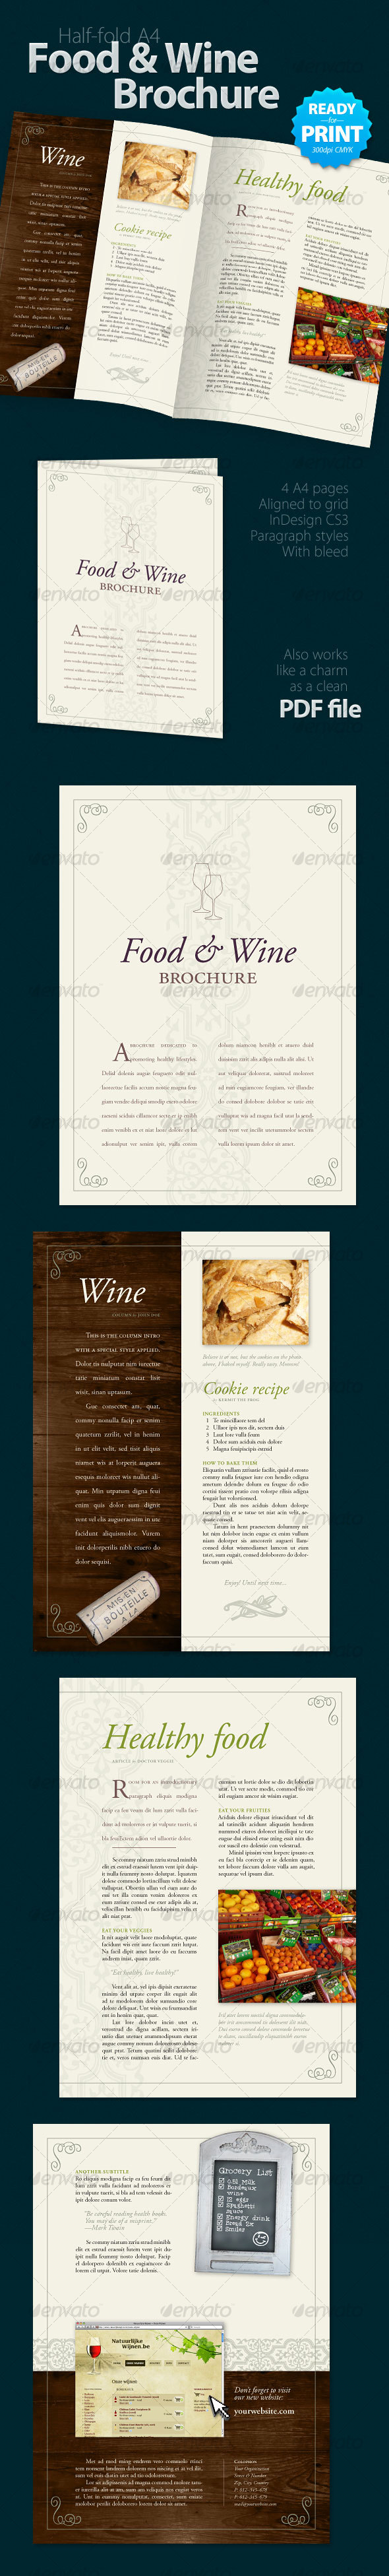 Food & Wine Brochure (4 Pages) - Food Menus Print Templates